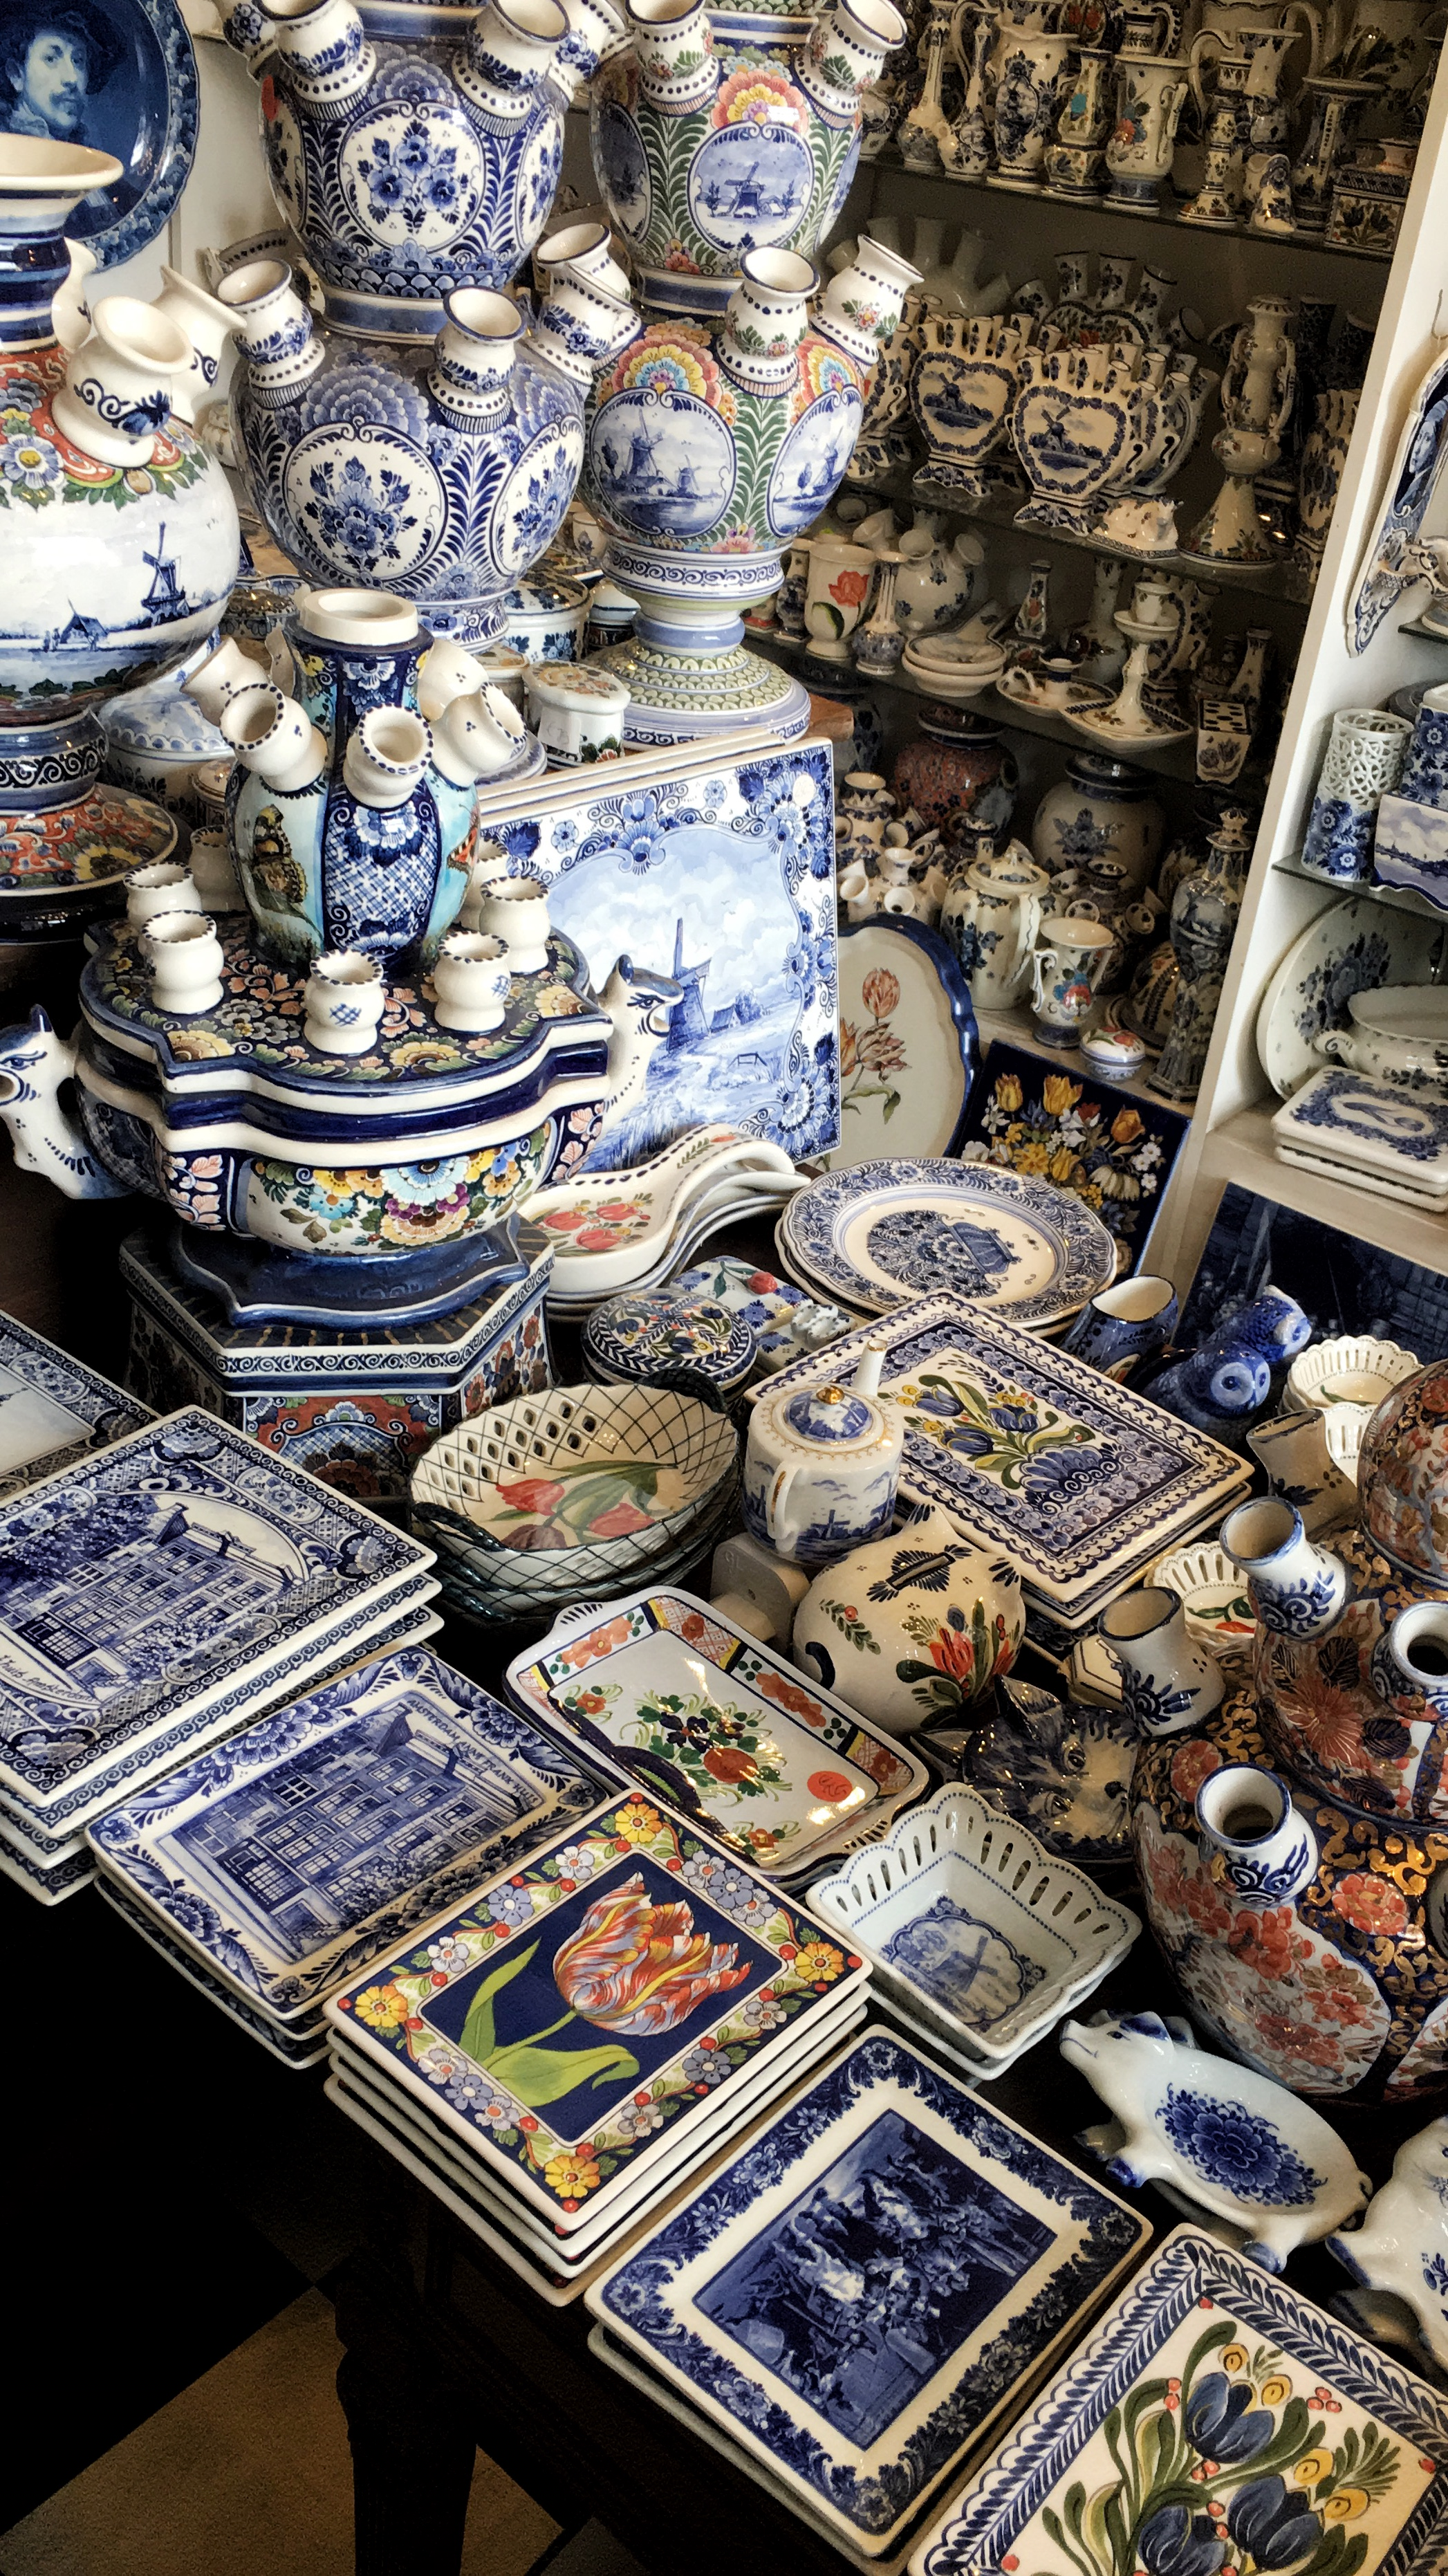 Delft pottery - 3 days in Amsterdam featured by popular Washington DC travel blogger, Monica Dutia